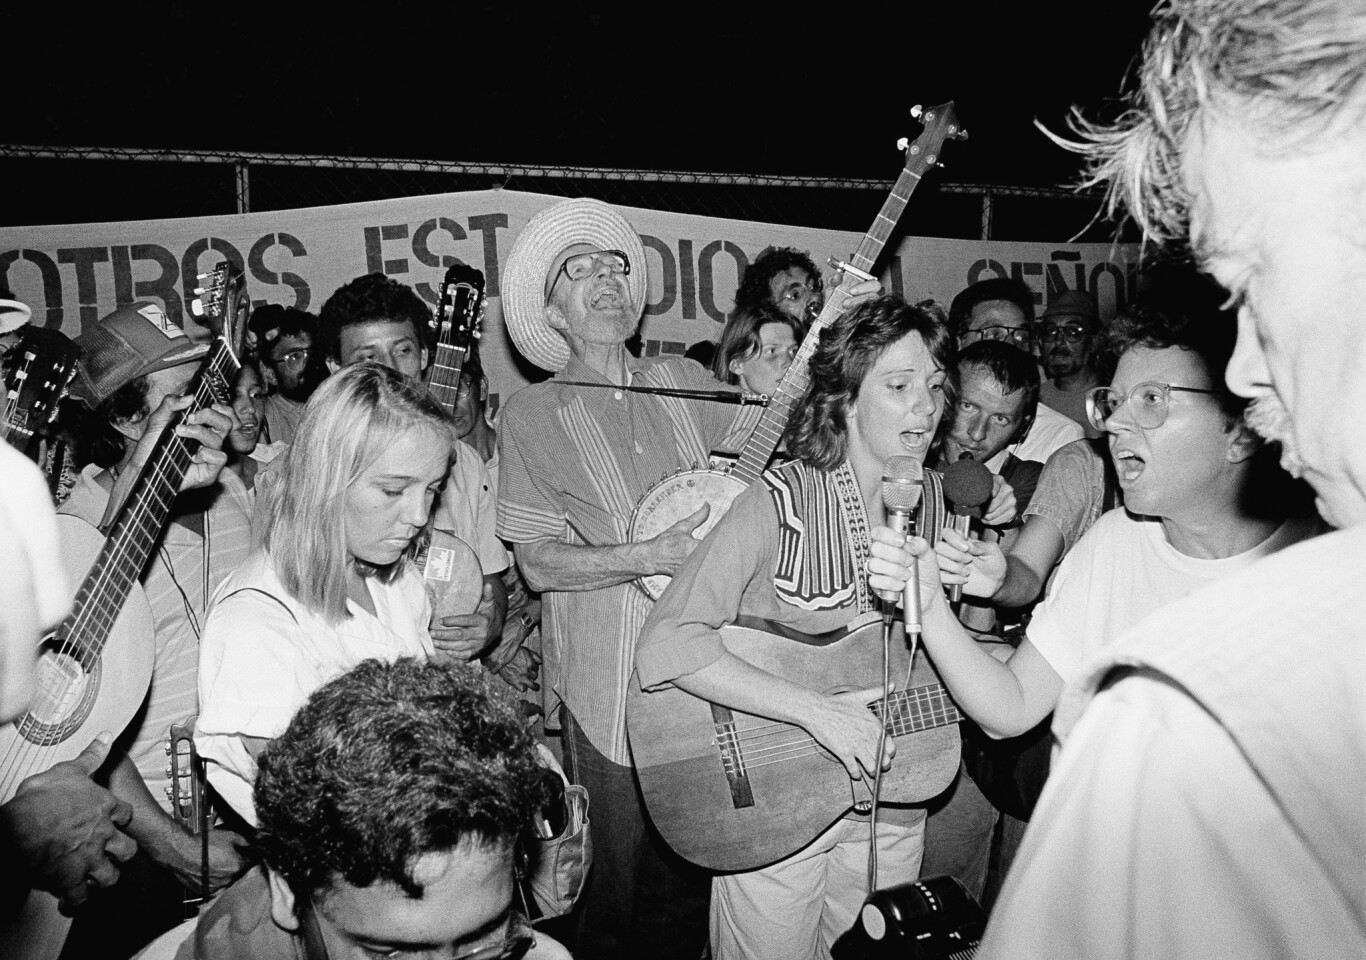 Seeger joins in a song at a 1988 rally outside the U.S. Embassy in Managua, Nicaragua. The gathering was to protest U.S. aid going to the Nicaraguan Contra rebels.